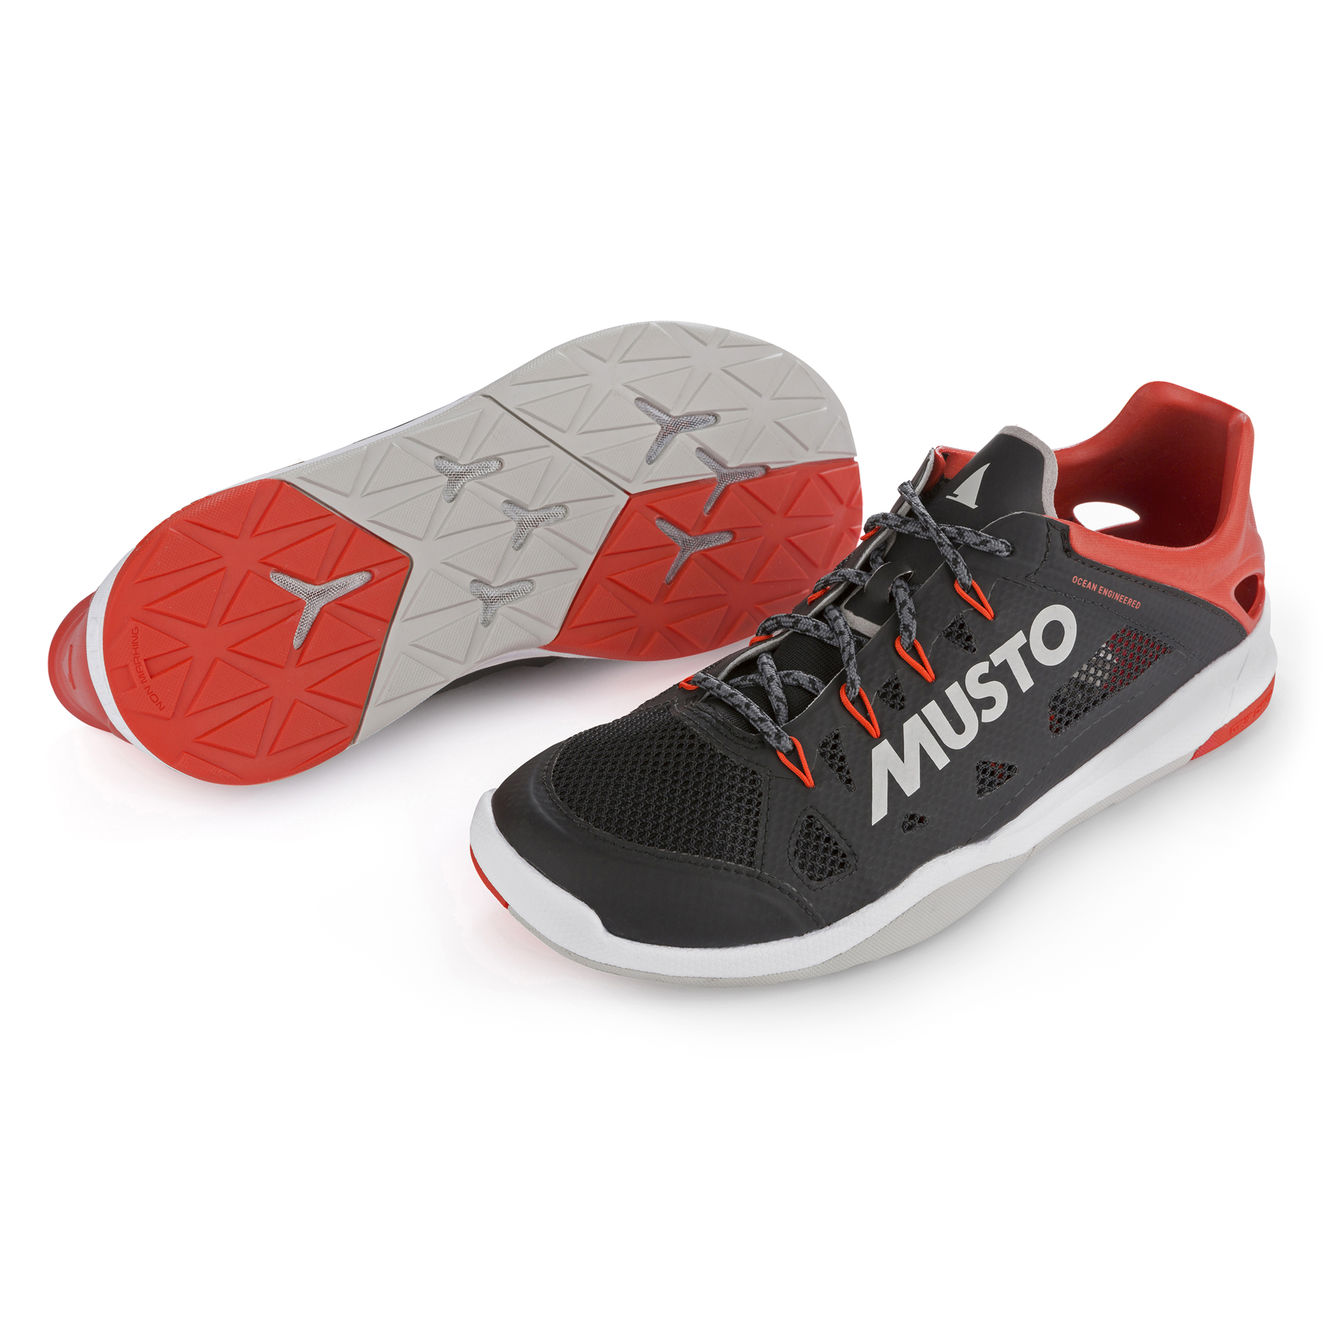 Dynamic Pro Lite Musto Sailing Shoes Review